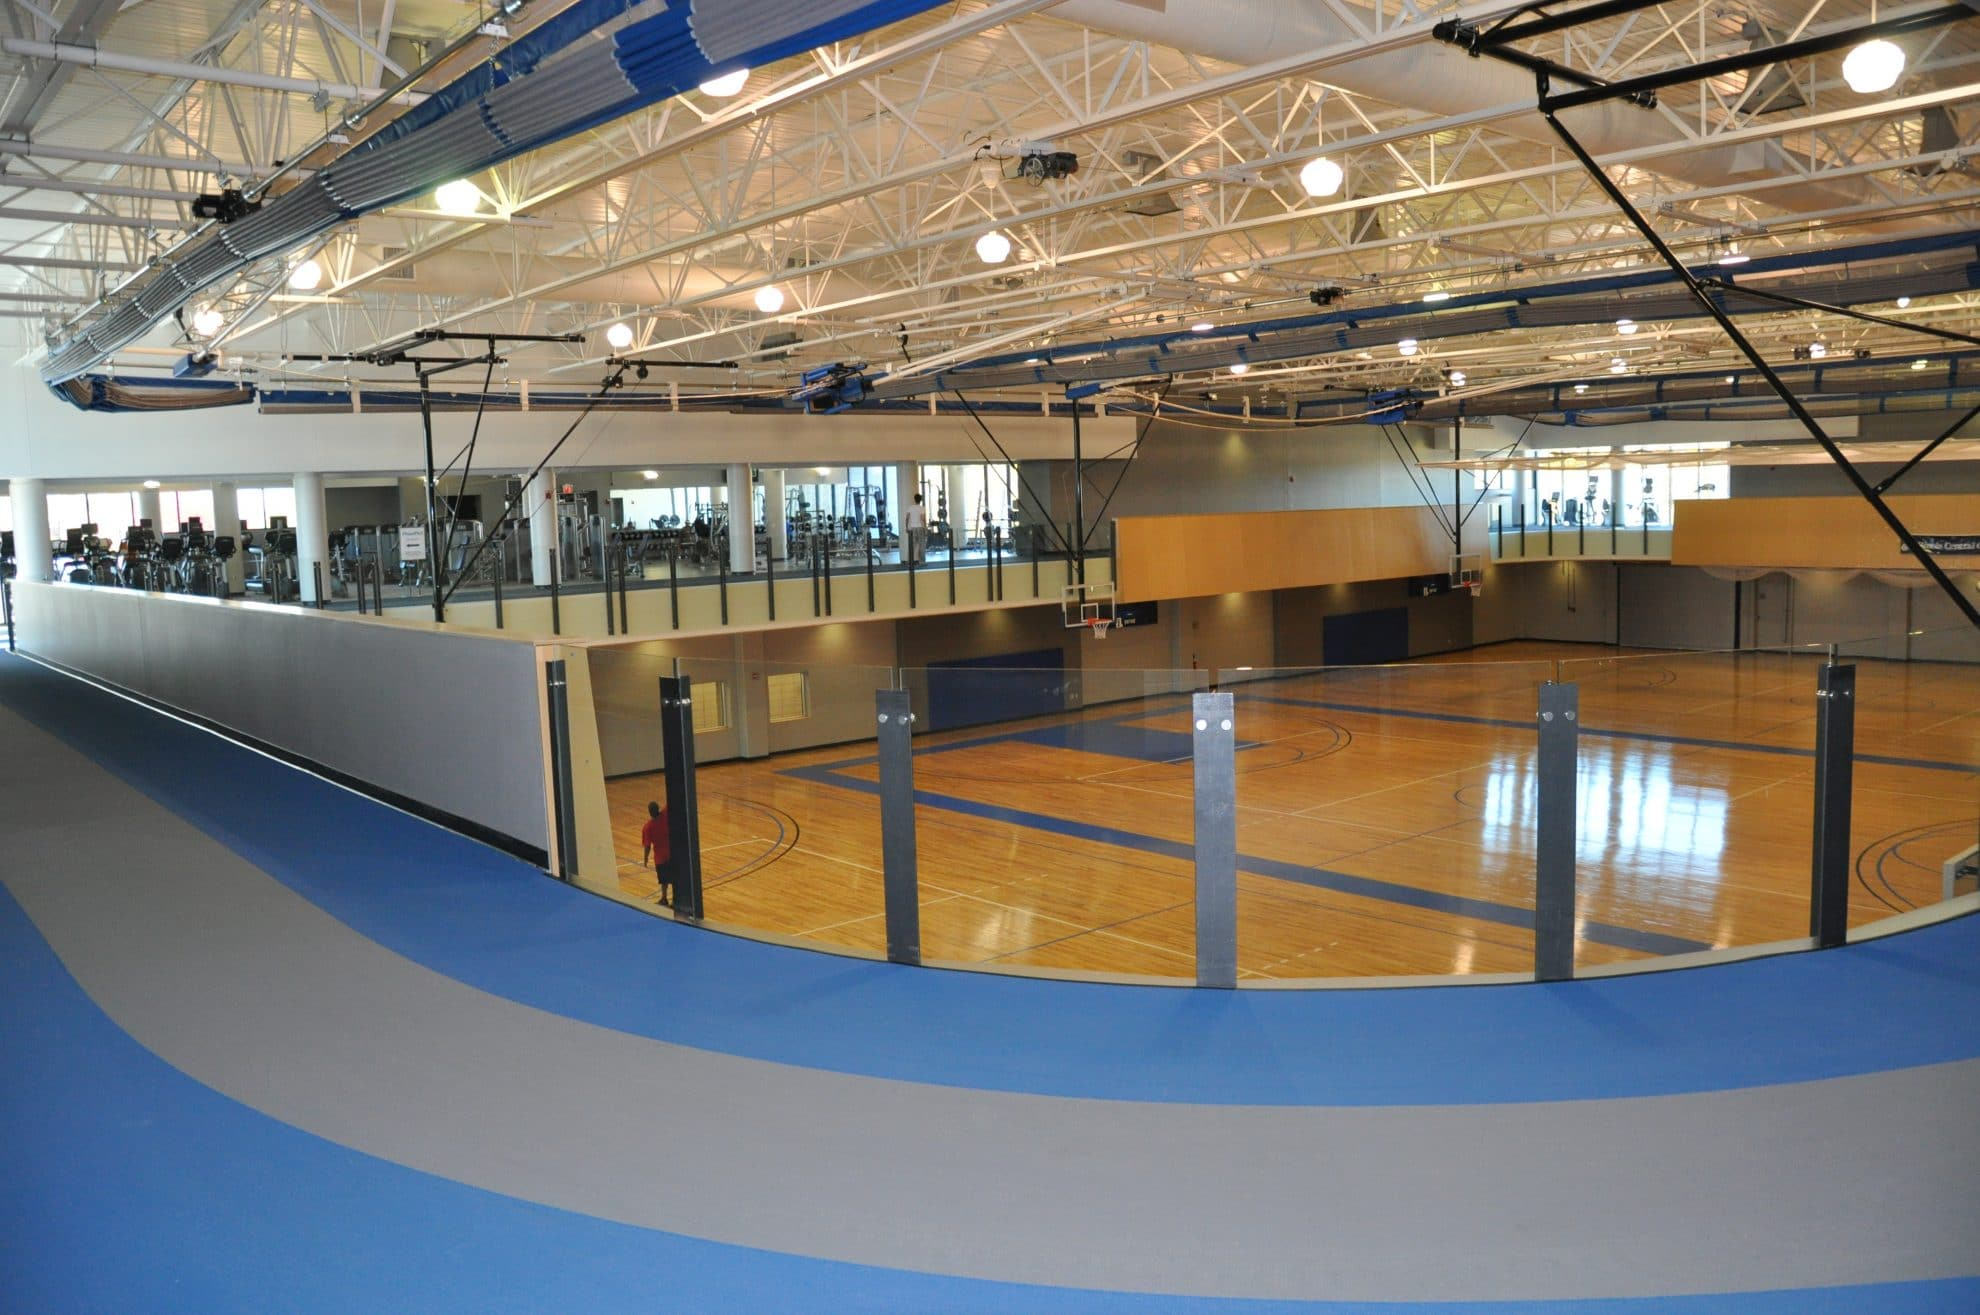 Track and lower view of basketball courts.